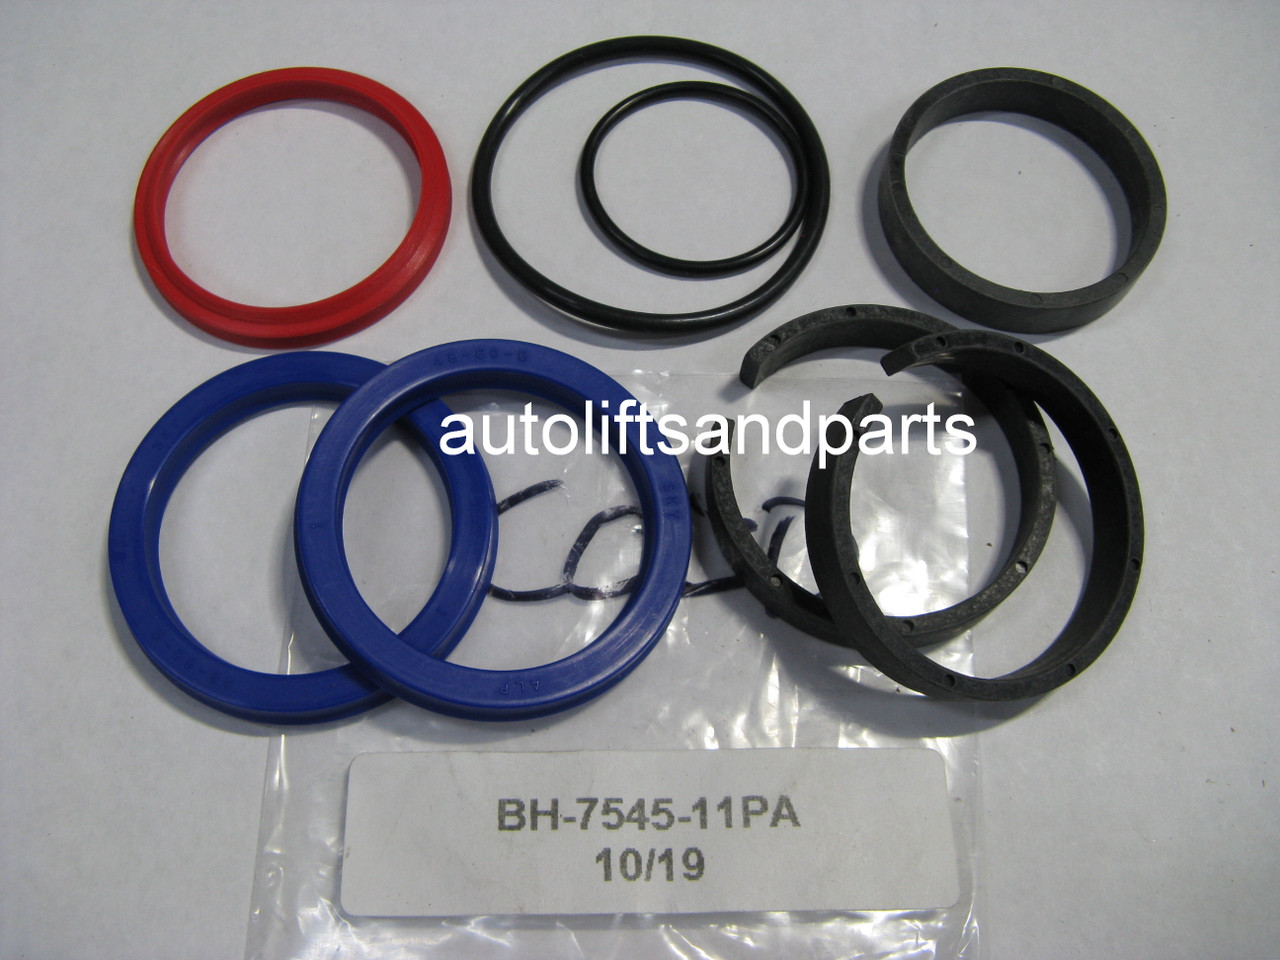 Seal Kit for Panni Hydraulic Cylinder Rotary N342-13